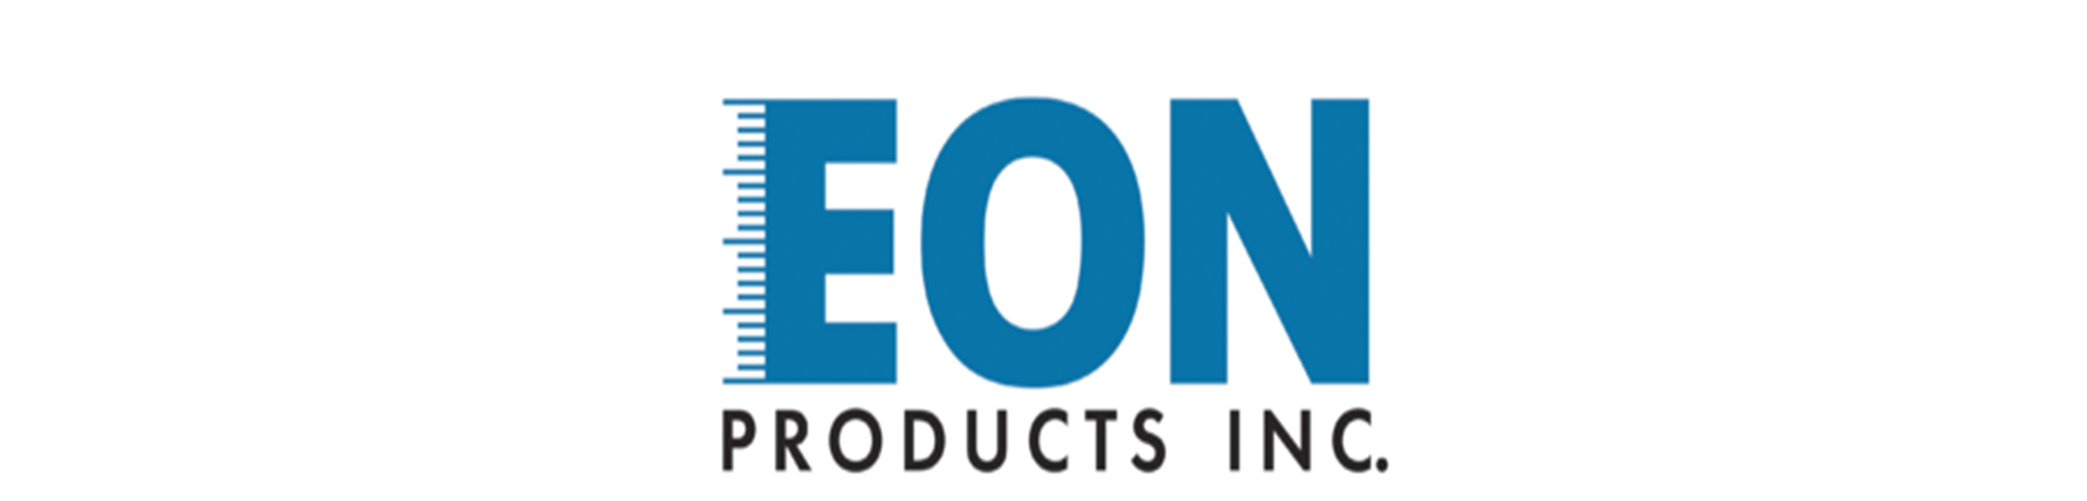 EON Products, Inc.